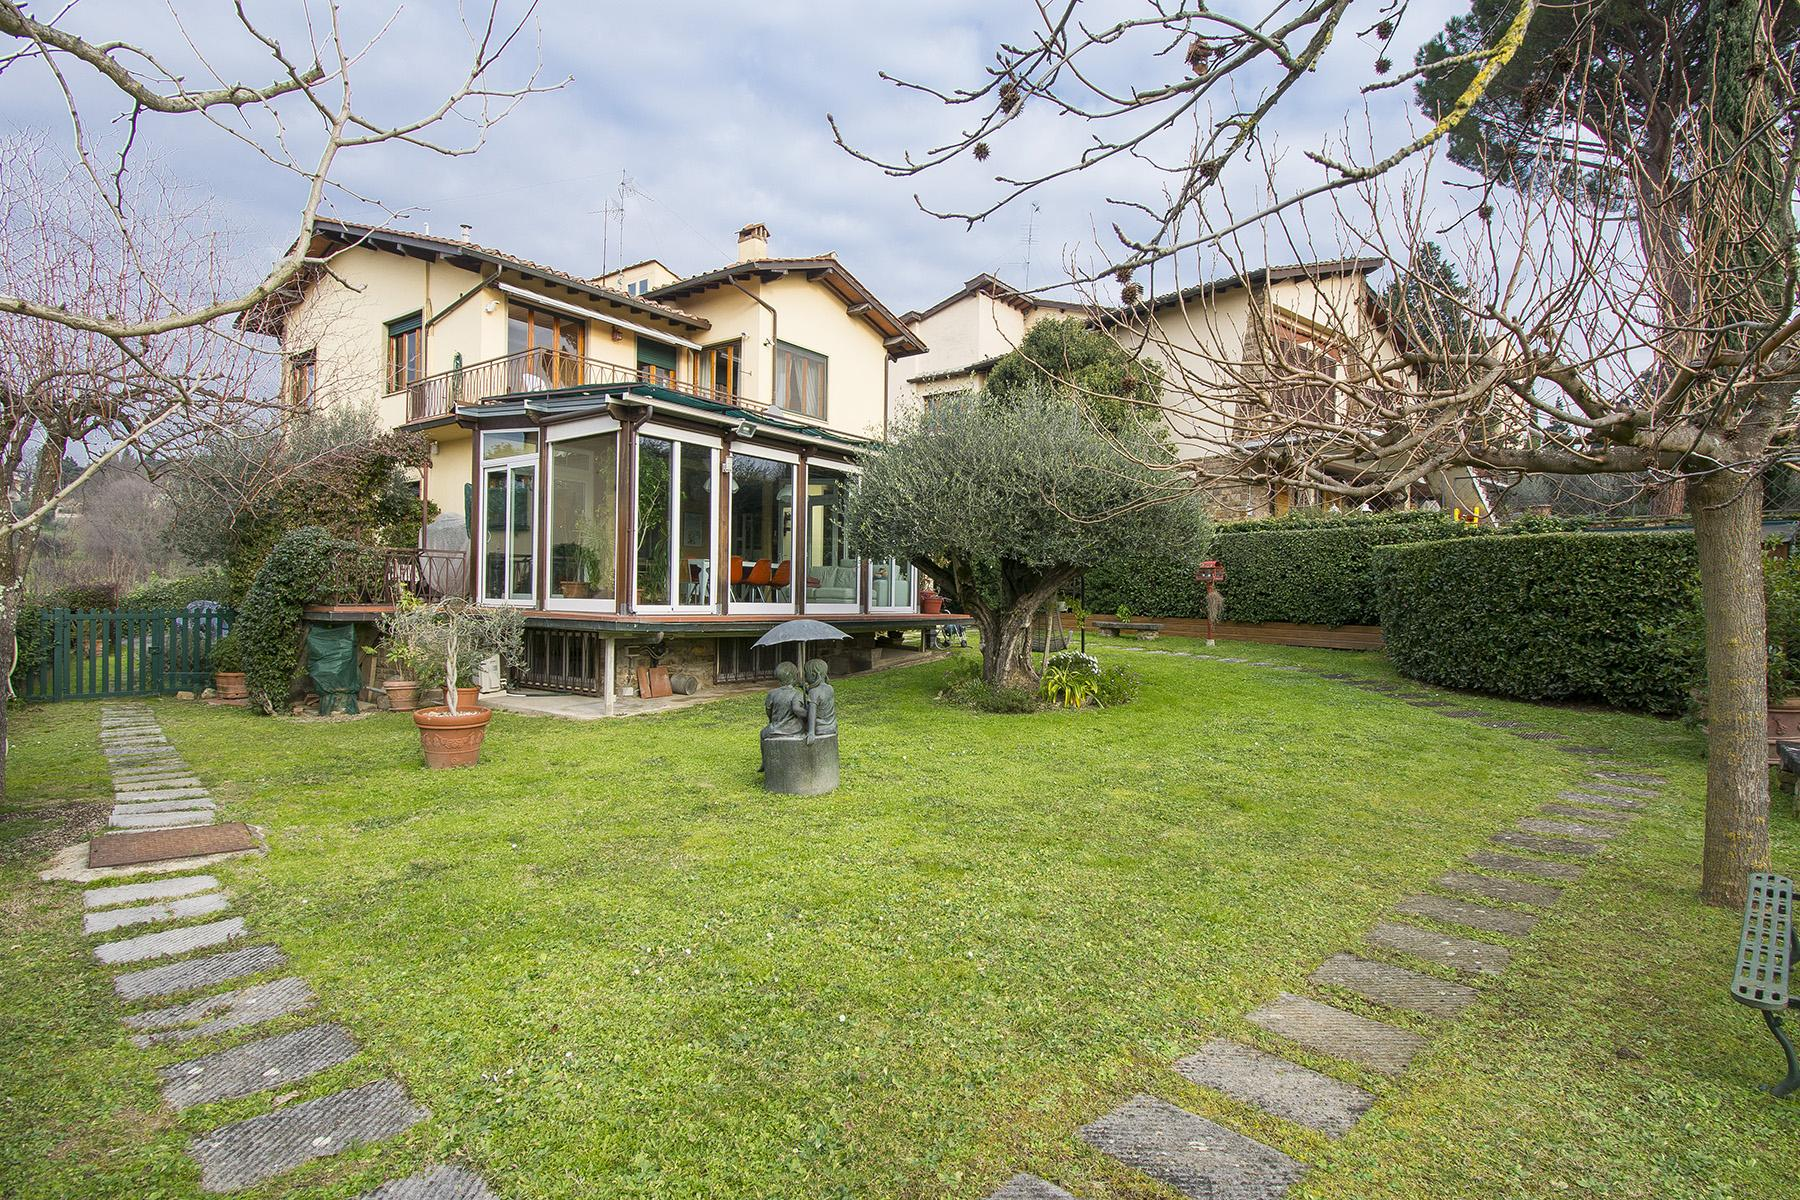 Villa in the green hill of Via Bolognese - 25